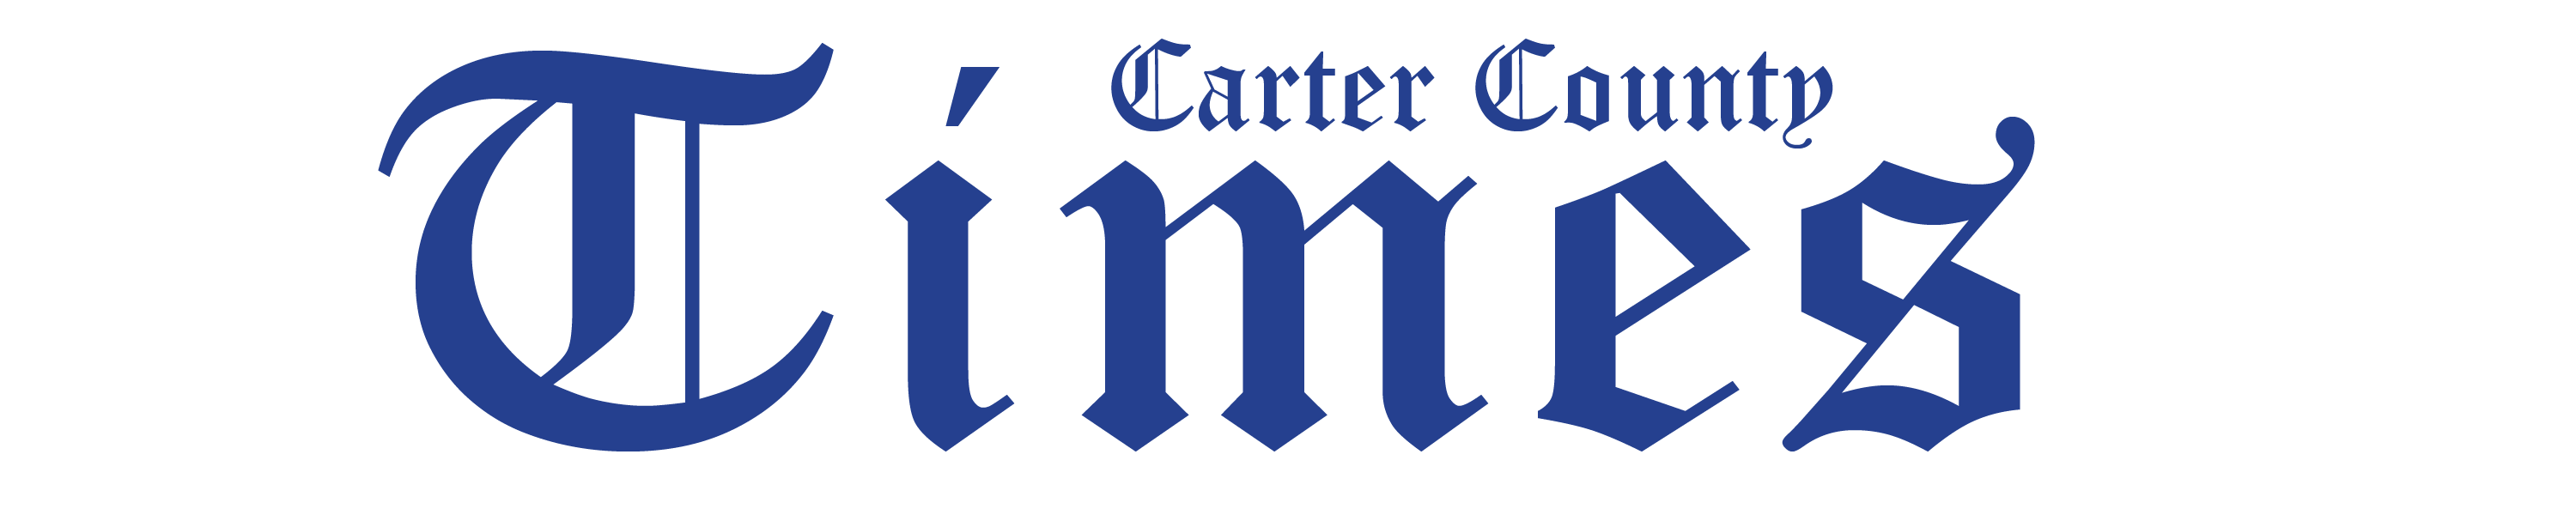 Carter County Times